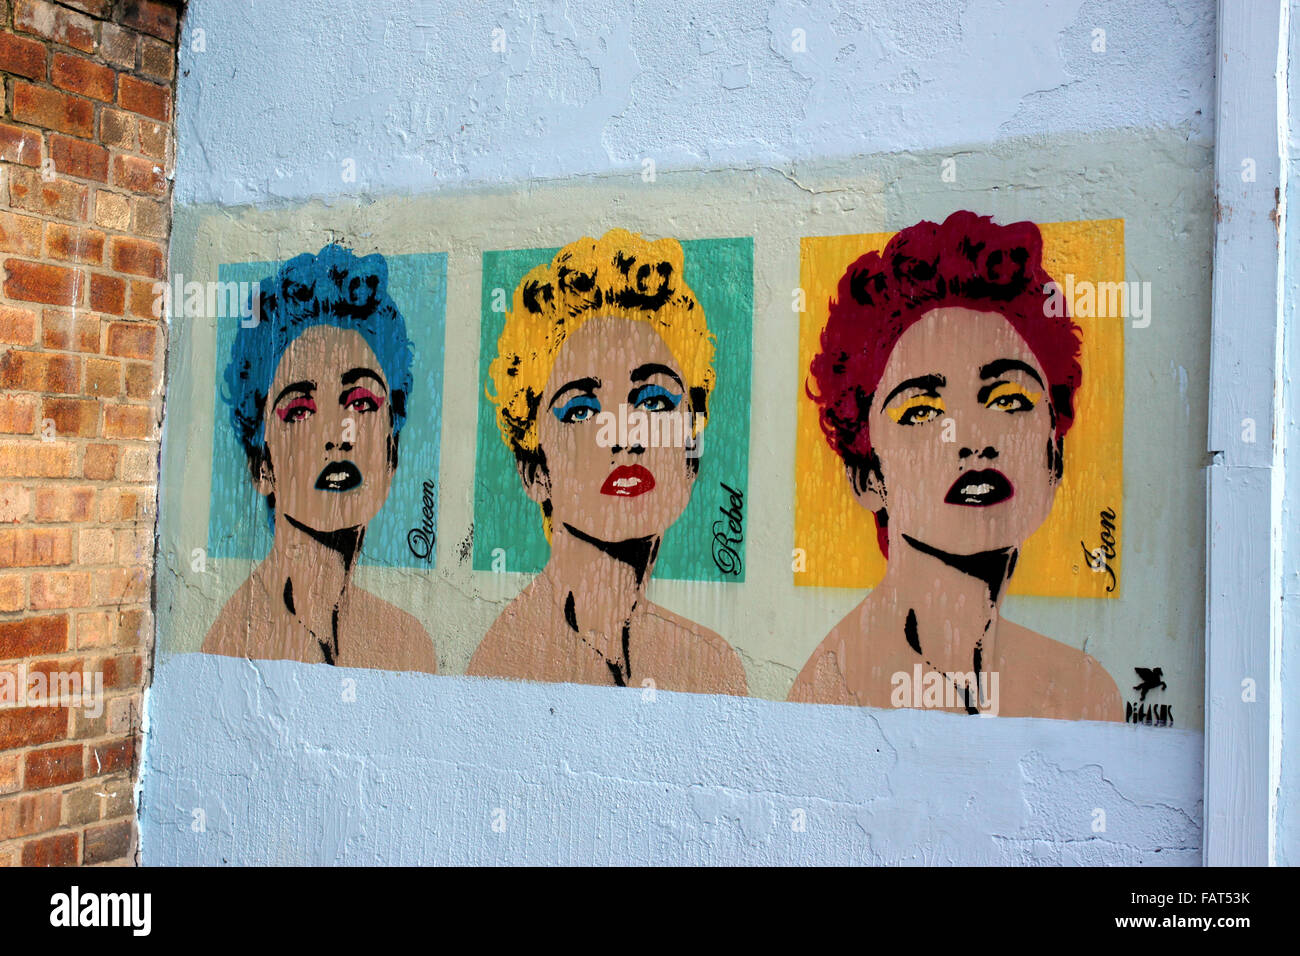 Street art by Pegasus featuring Madonna on a wall in Islington, London - Stock Image